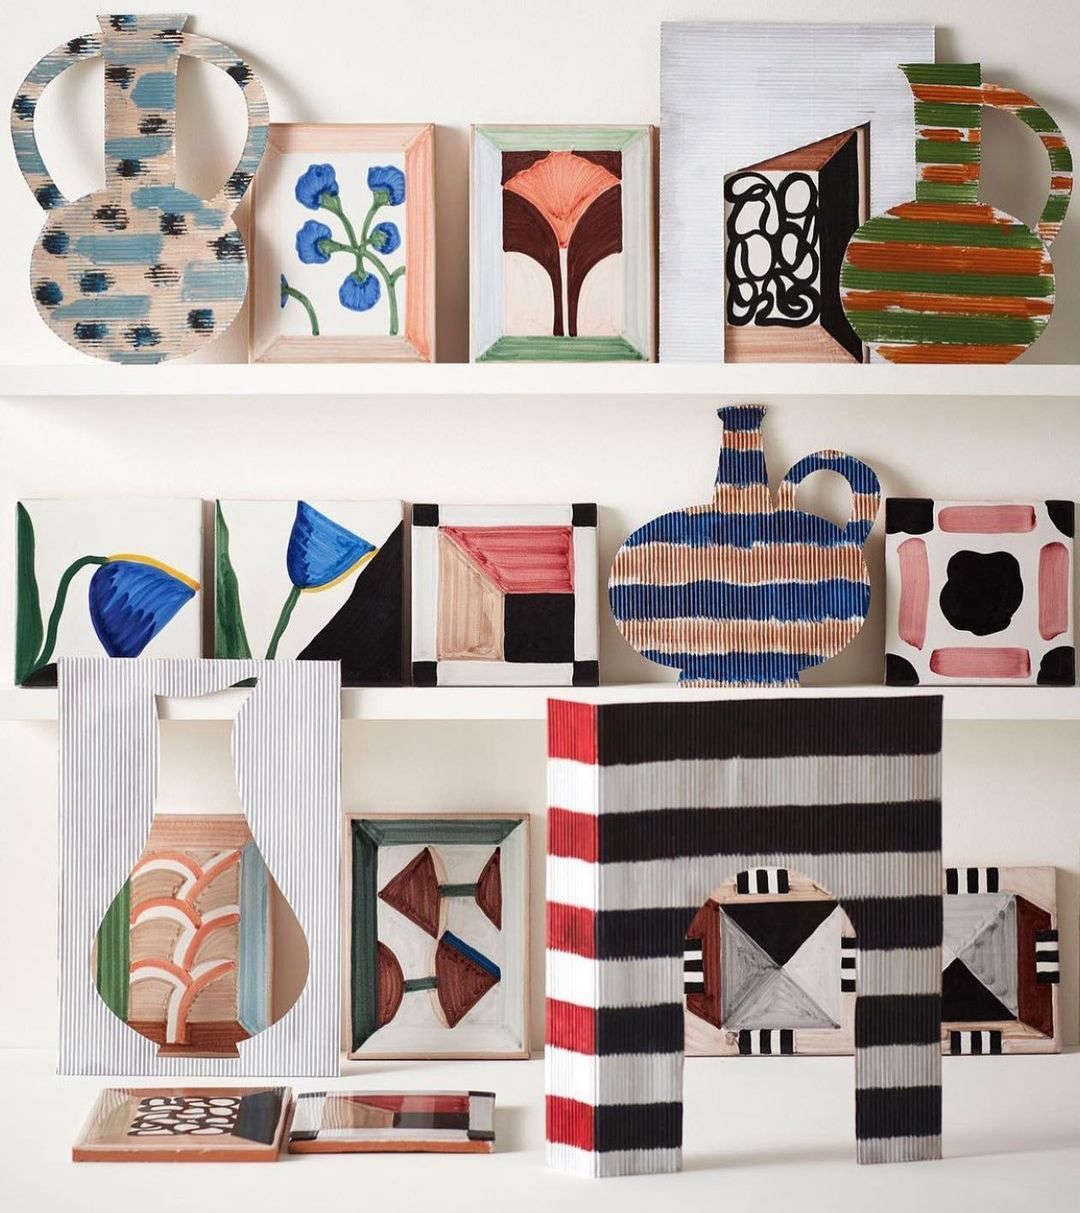 The Wayne Pate Tile Collection I is hand-painted on terracotta. There are nine designs: five rectangular vignettes and four abstract square designs.